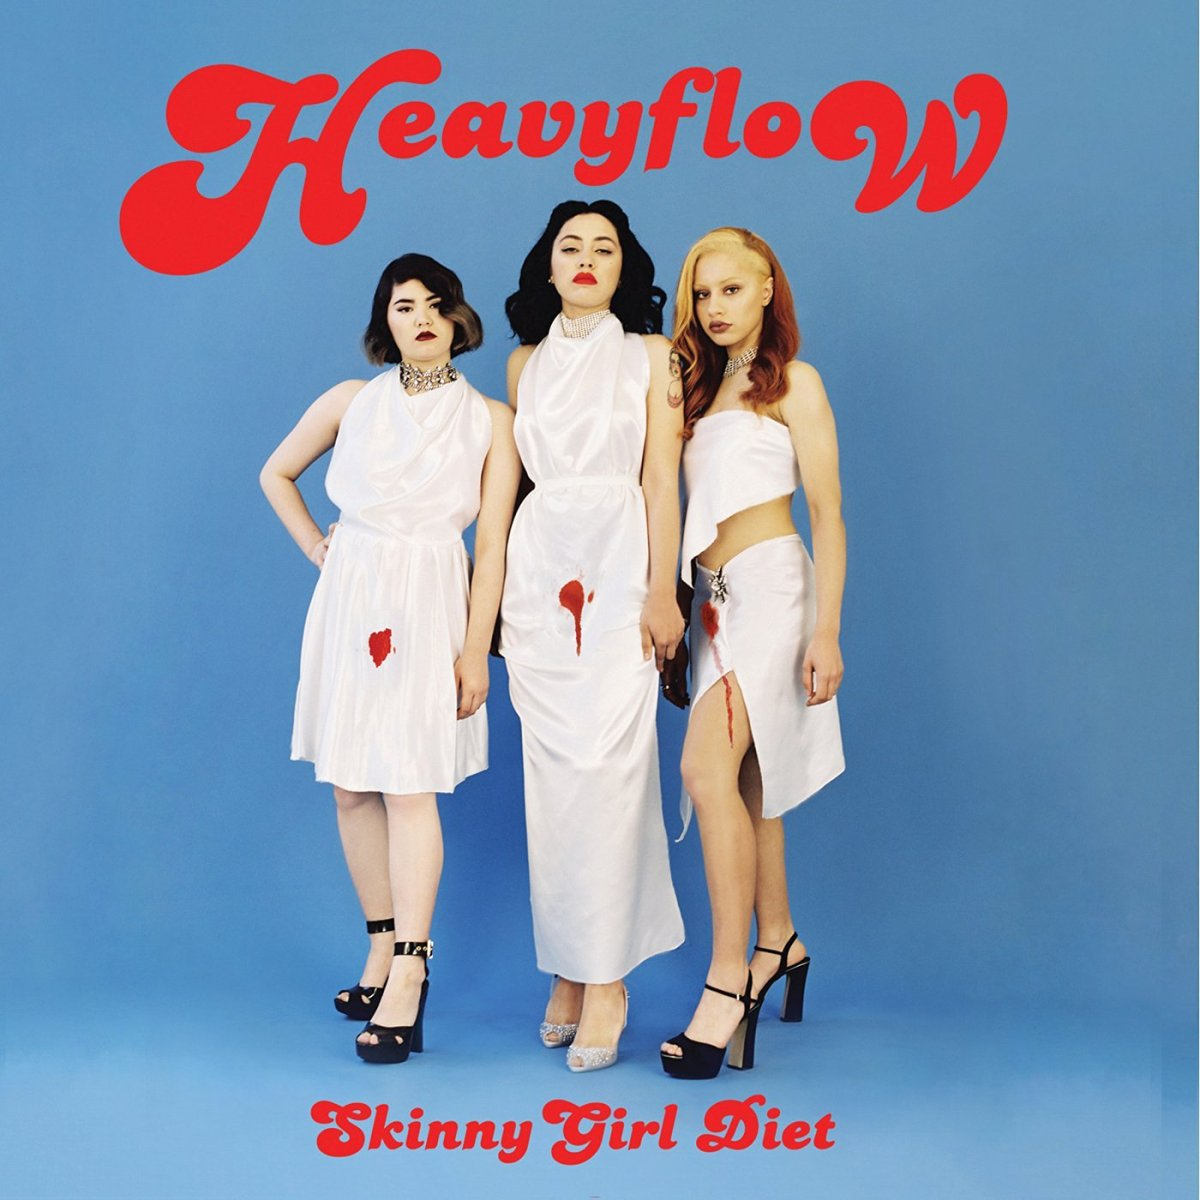 Skinny Girl Diet - Heavy Flow (Fiasco Recordings)